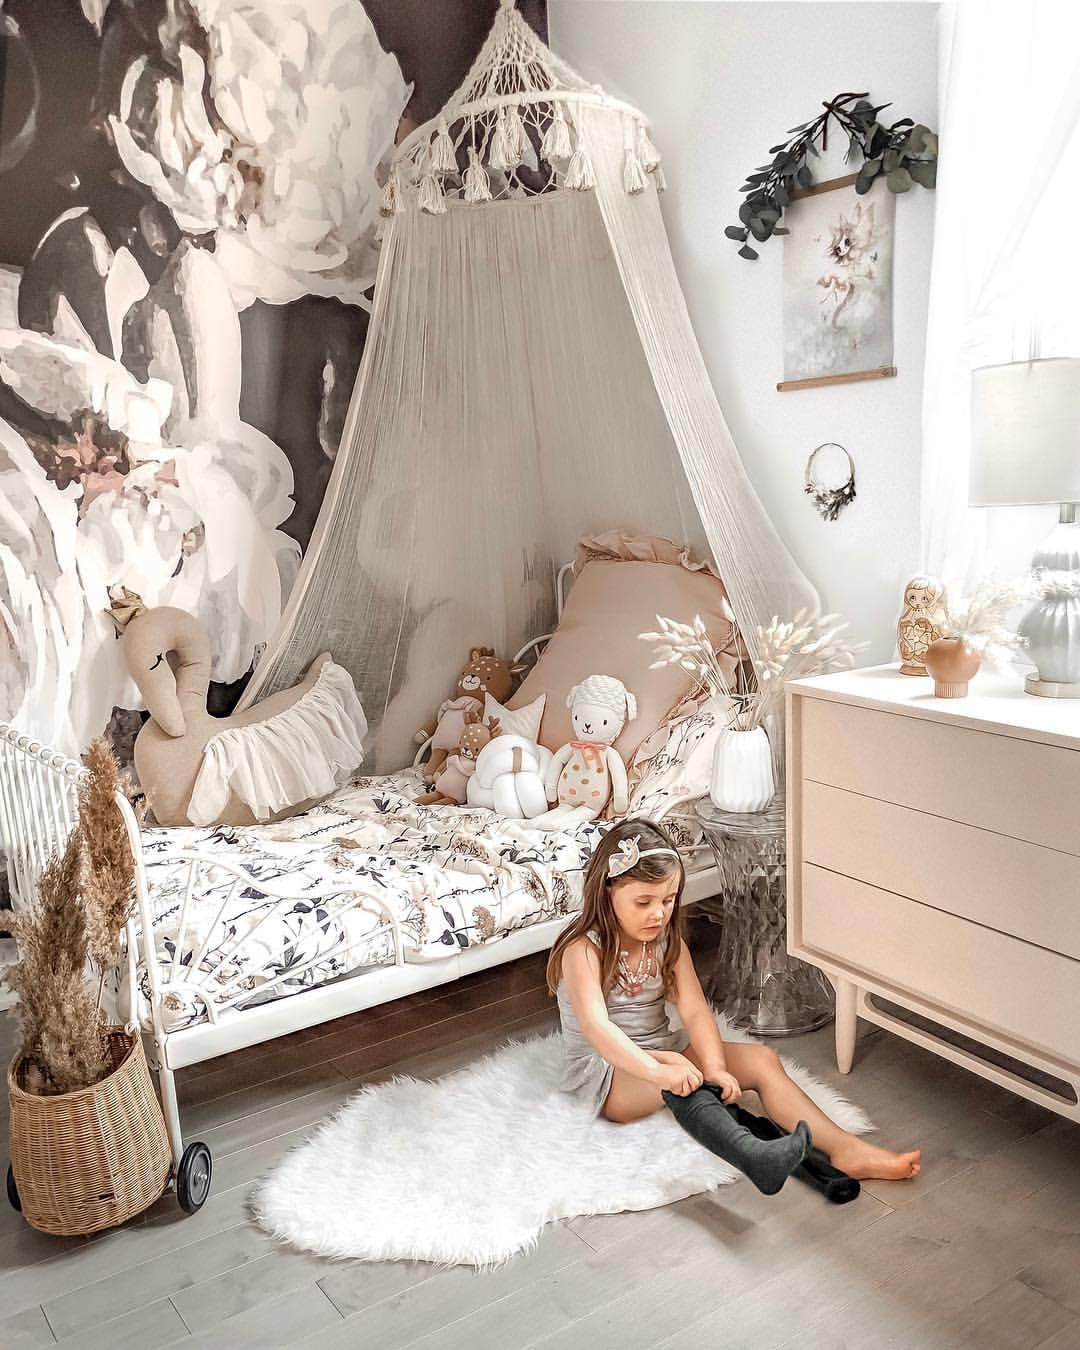 Girl Bedroom Decor Canope Anewall wallpaper (With images